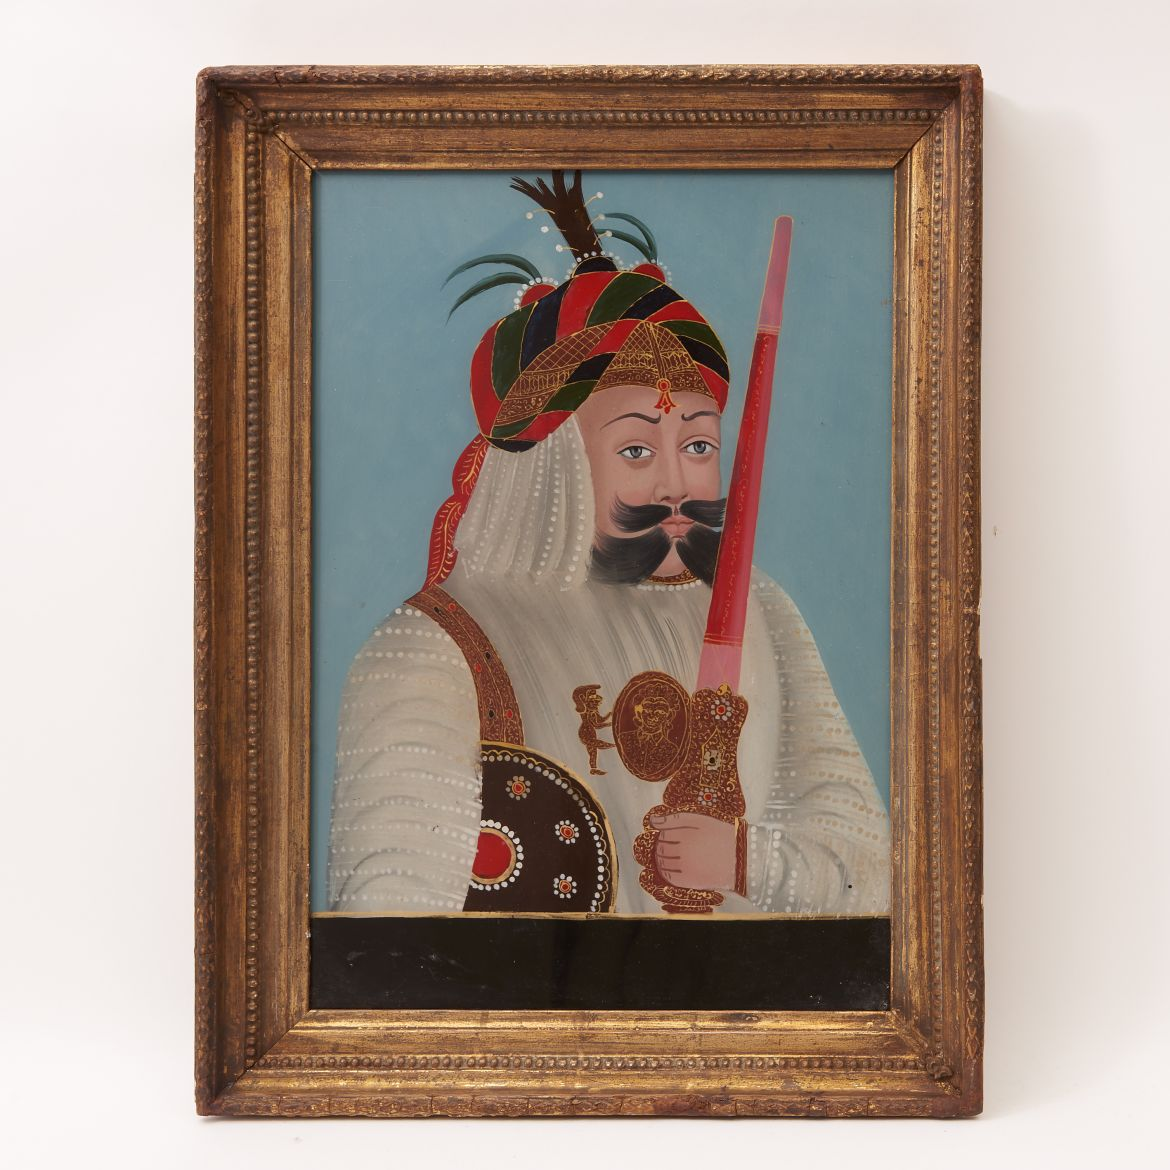 Painting of a Mughal Warrior